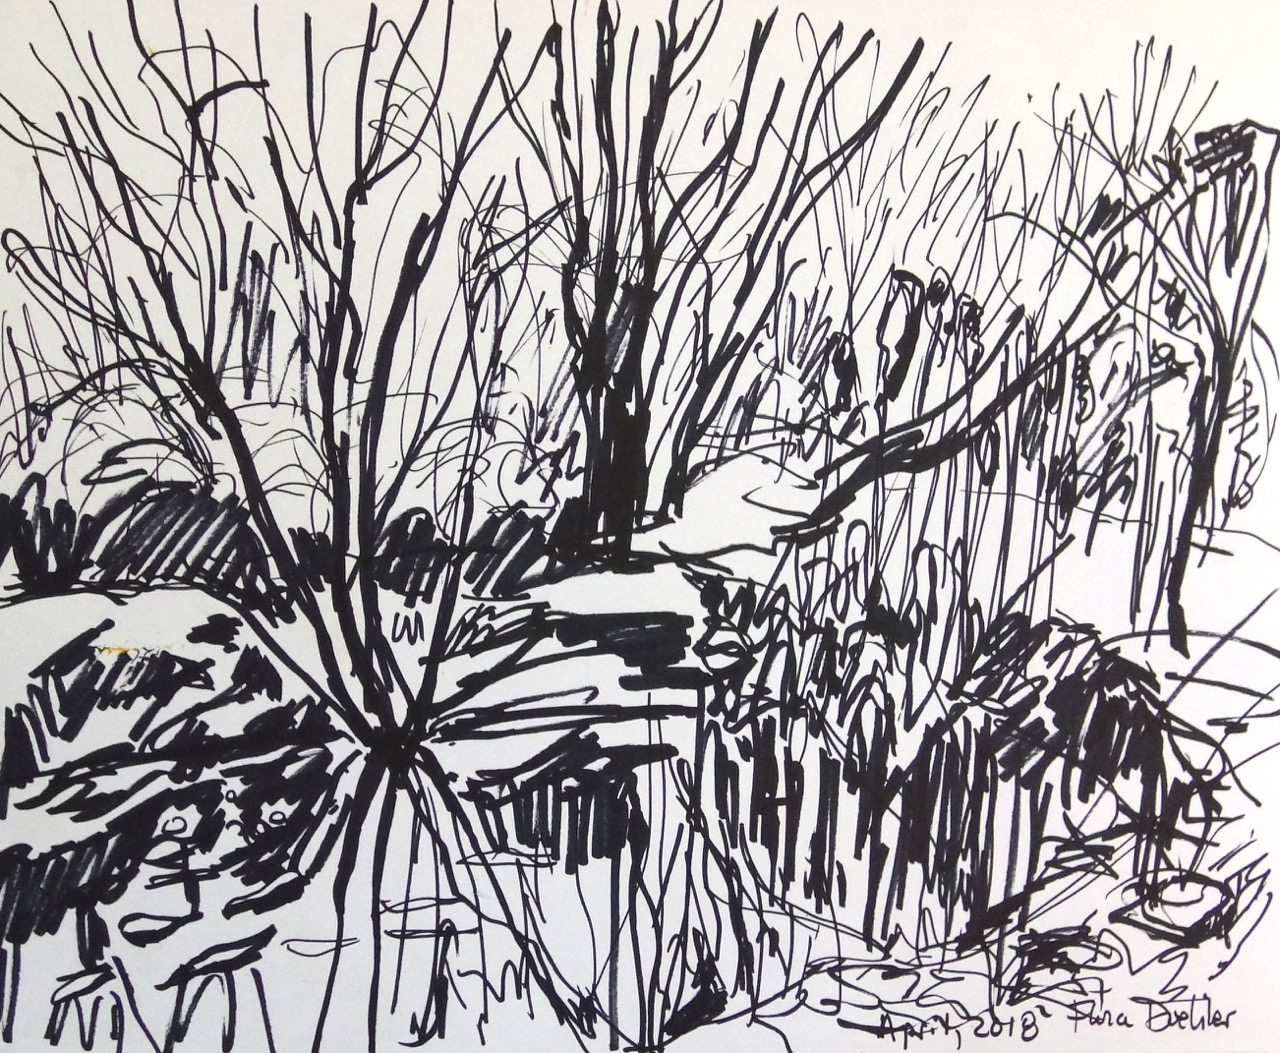 Sketching with Black Marker at the Pond